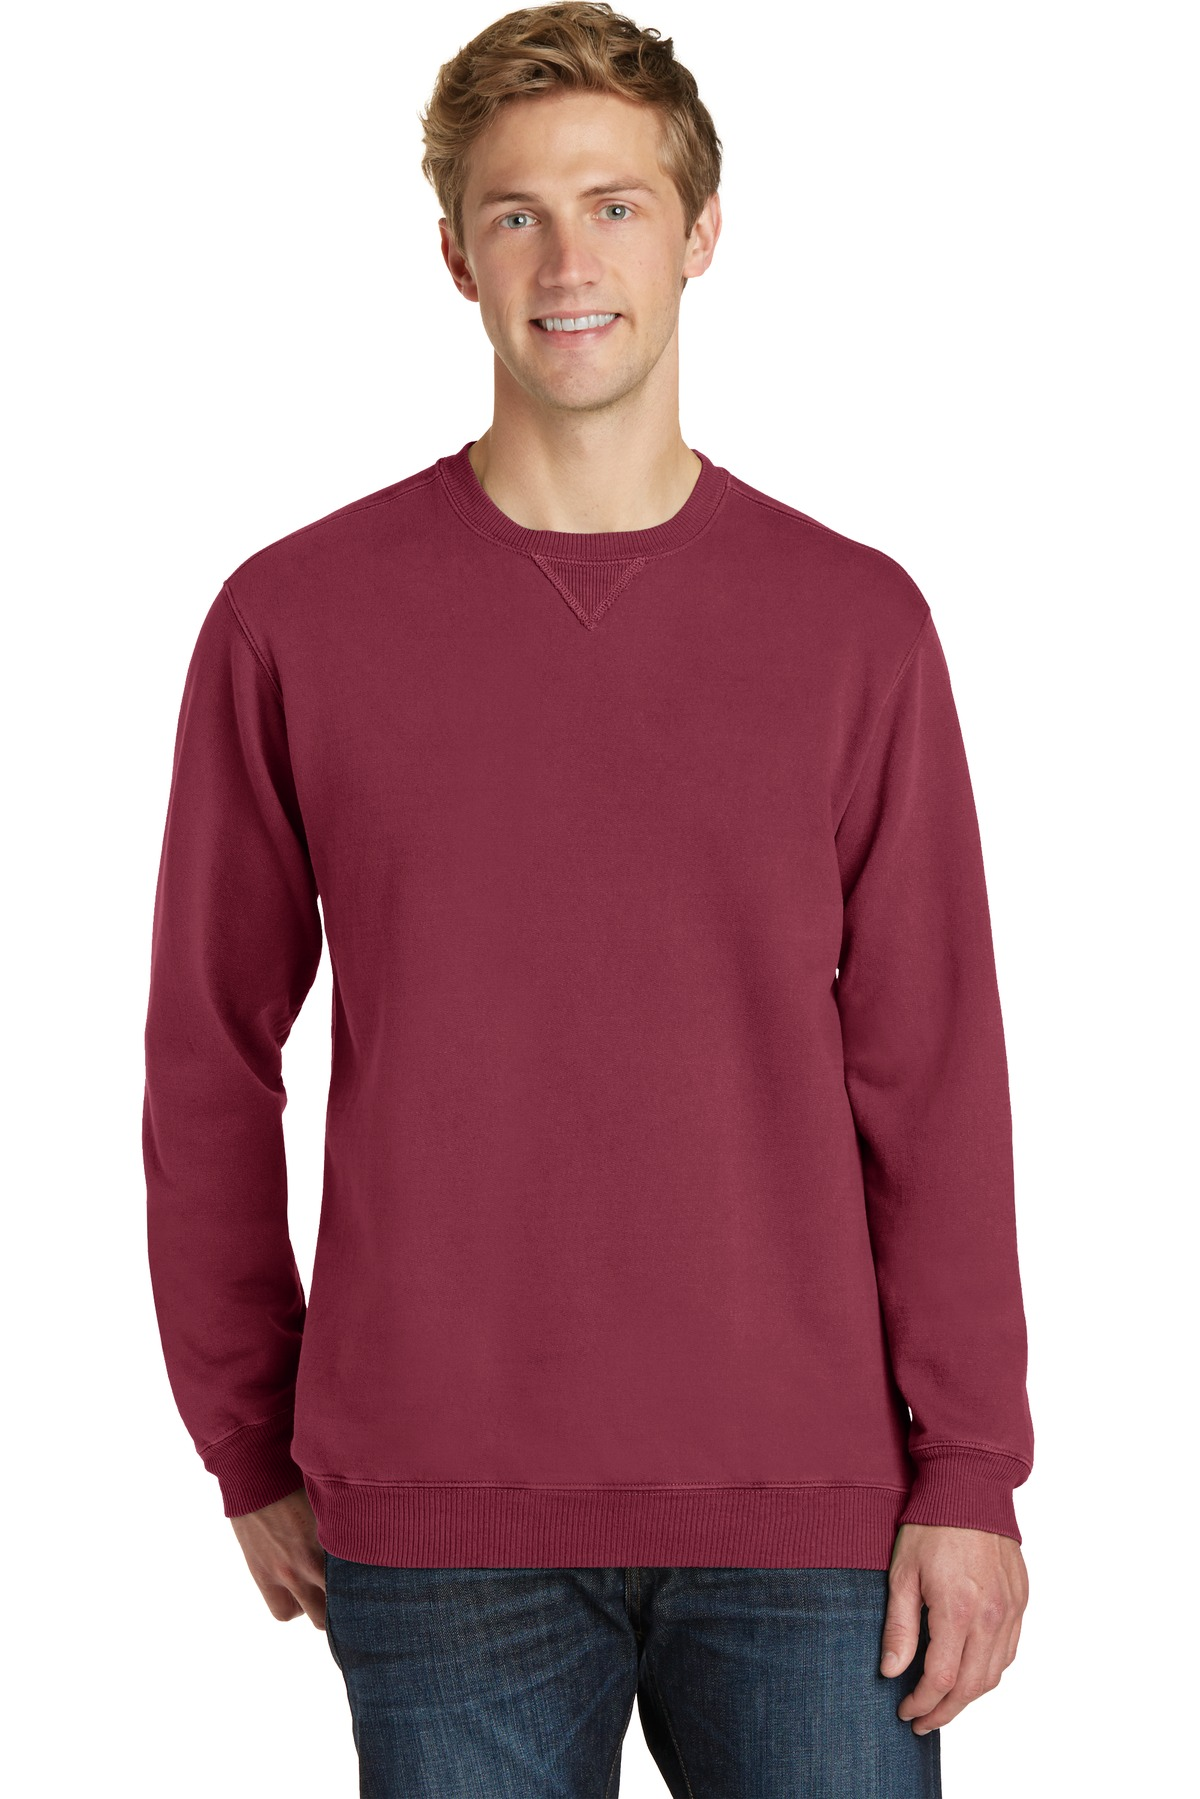 Port & Company ®  Beach Wash ™  Garment-Dyed Sweatshirt PC098 - Merlot